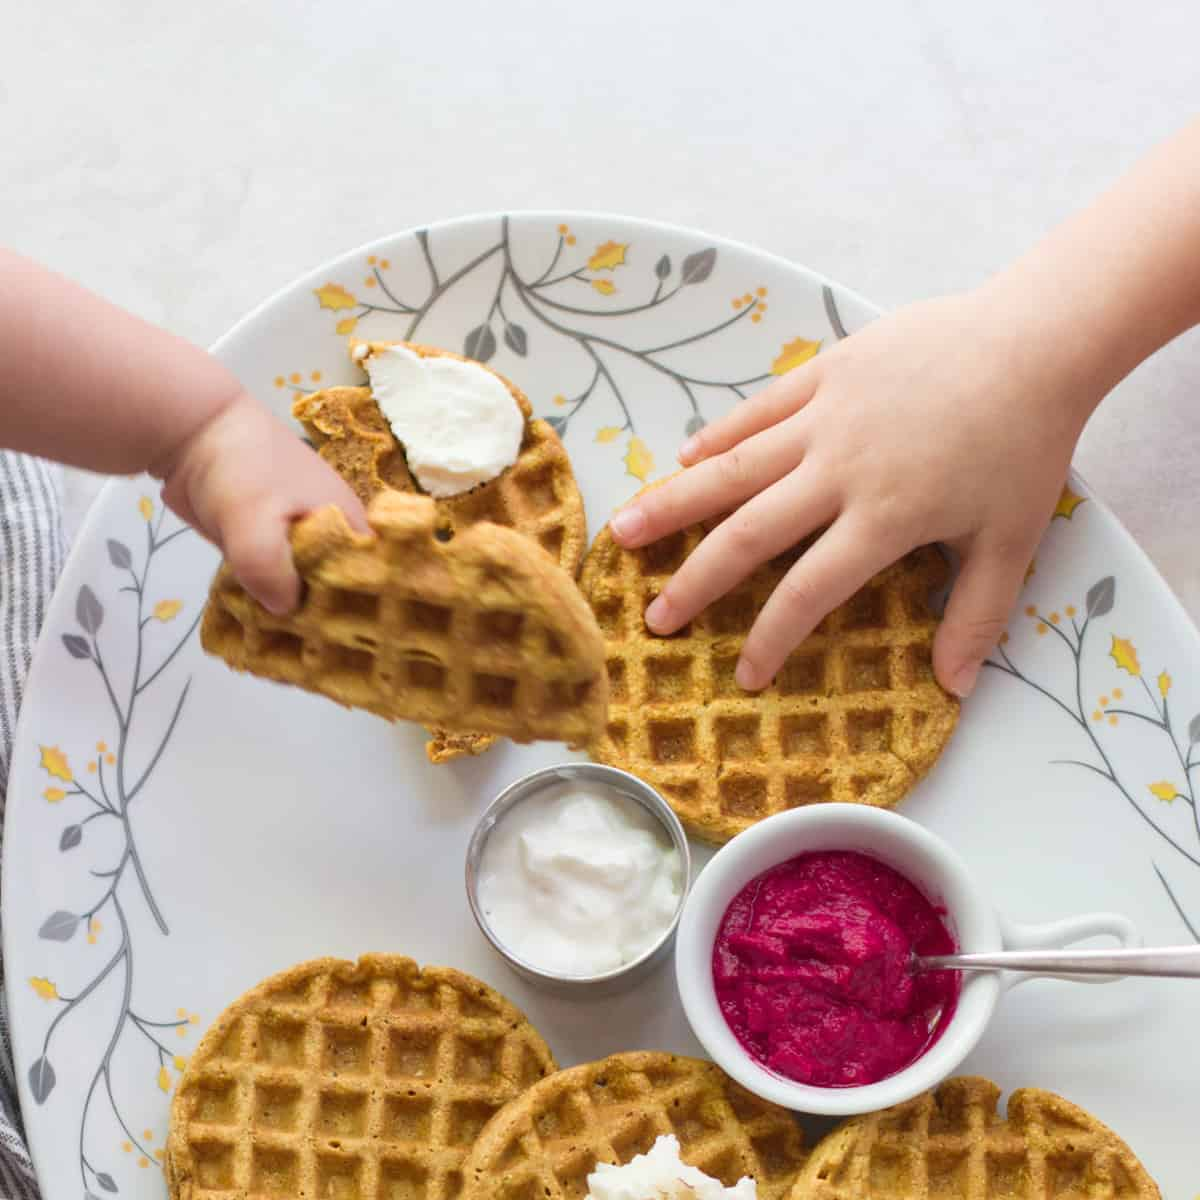 a baby's hand grabbing the waffle in the air